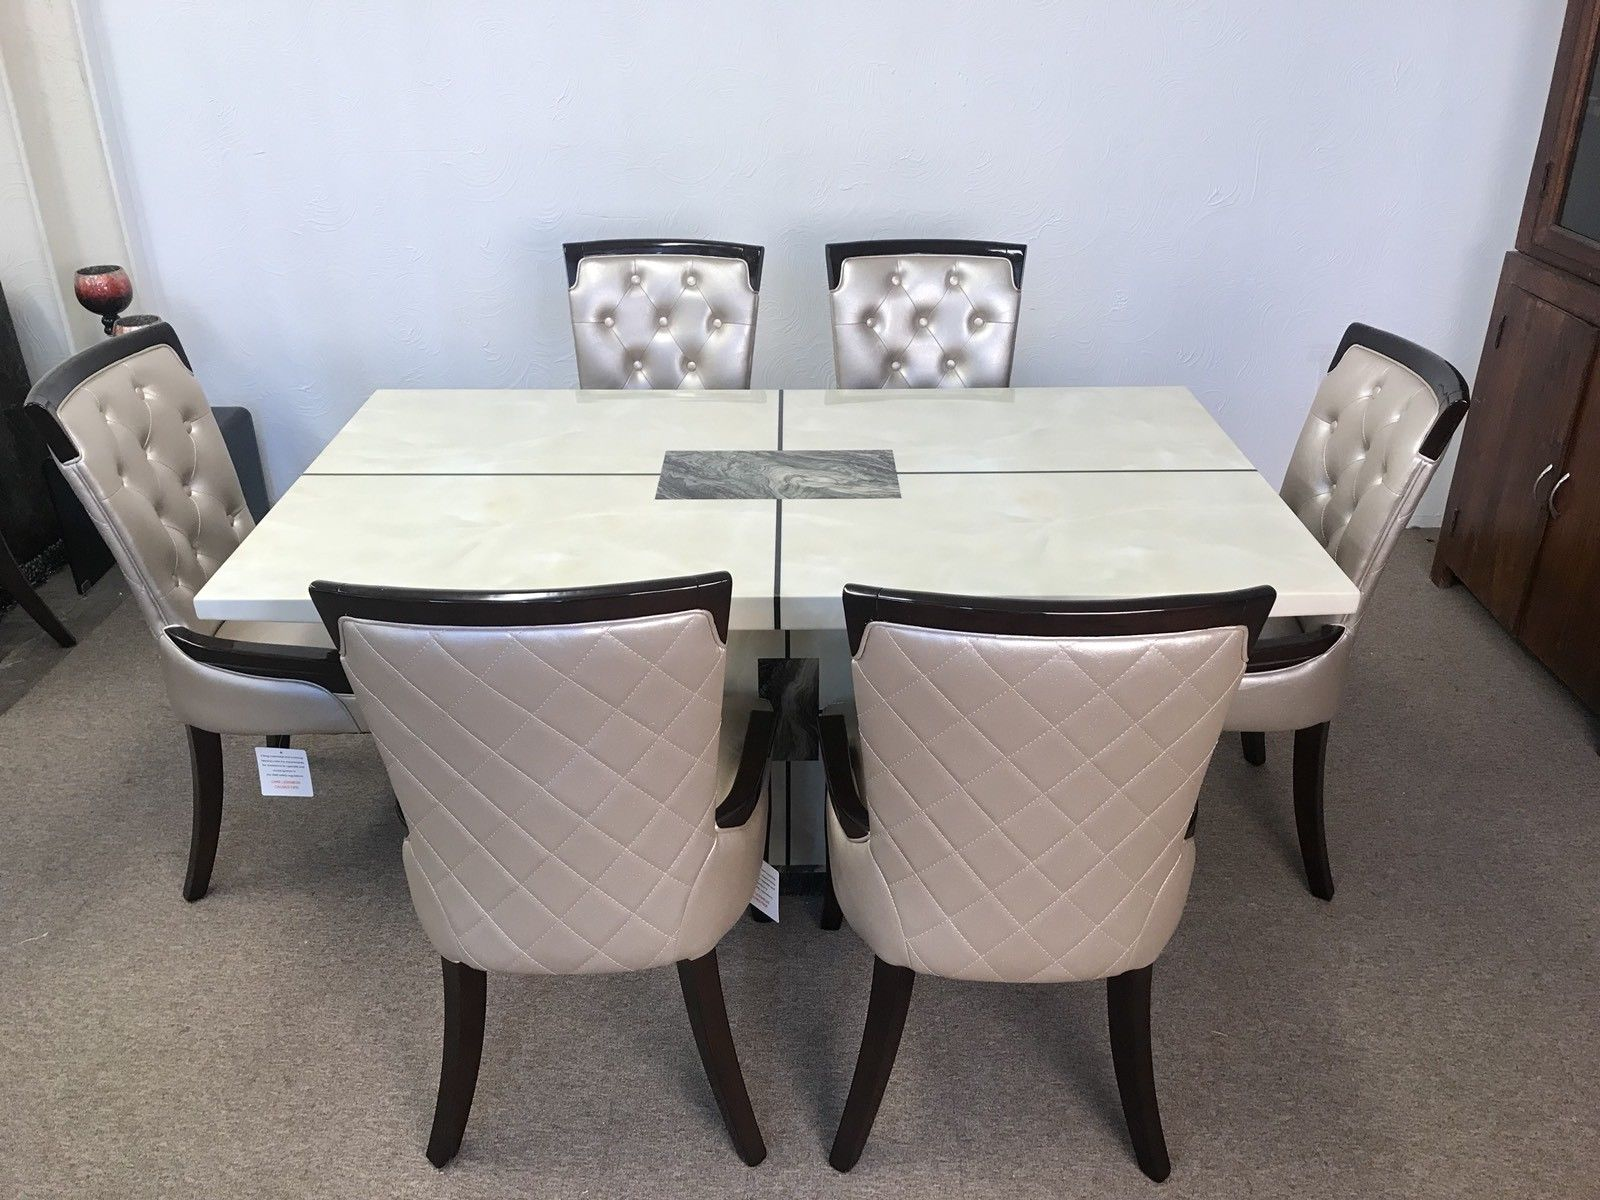 Marble Dining Table And 6 Chairs: Venice 160cm Marble Dining Table And 6 Gold Straightback